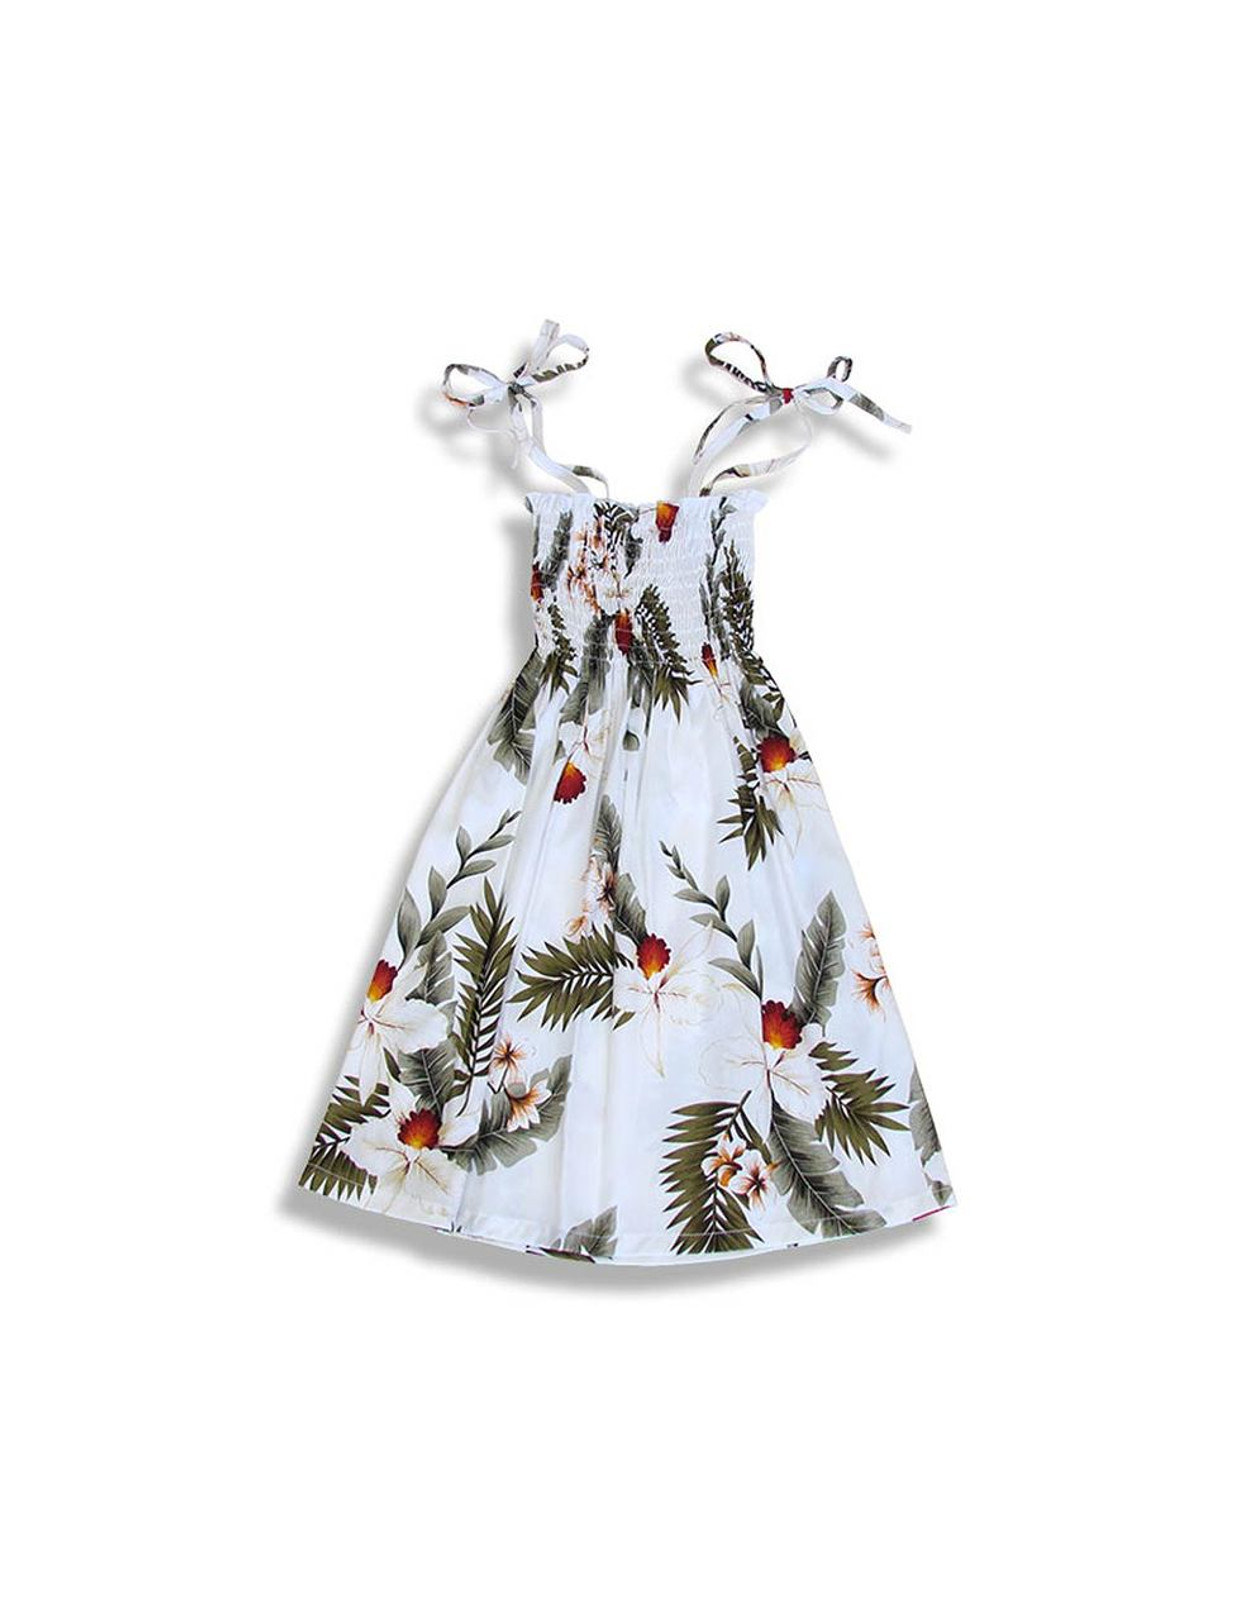 aa3b88ff832f Girl's Tube Top Hanapepe Dress with Orchids Smock Top with Straps 100% Rayon  Soft Fabric